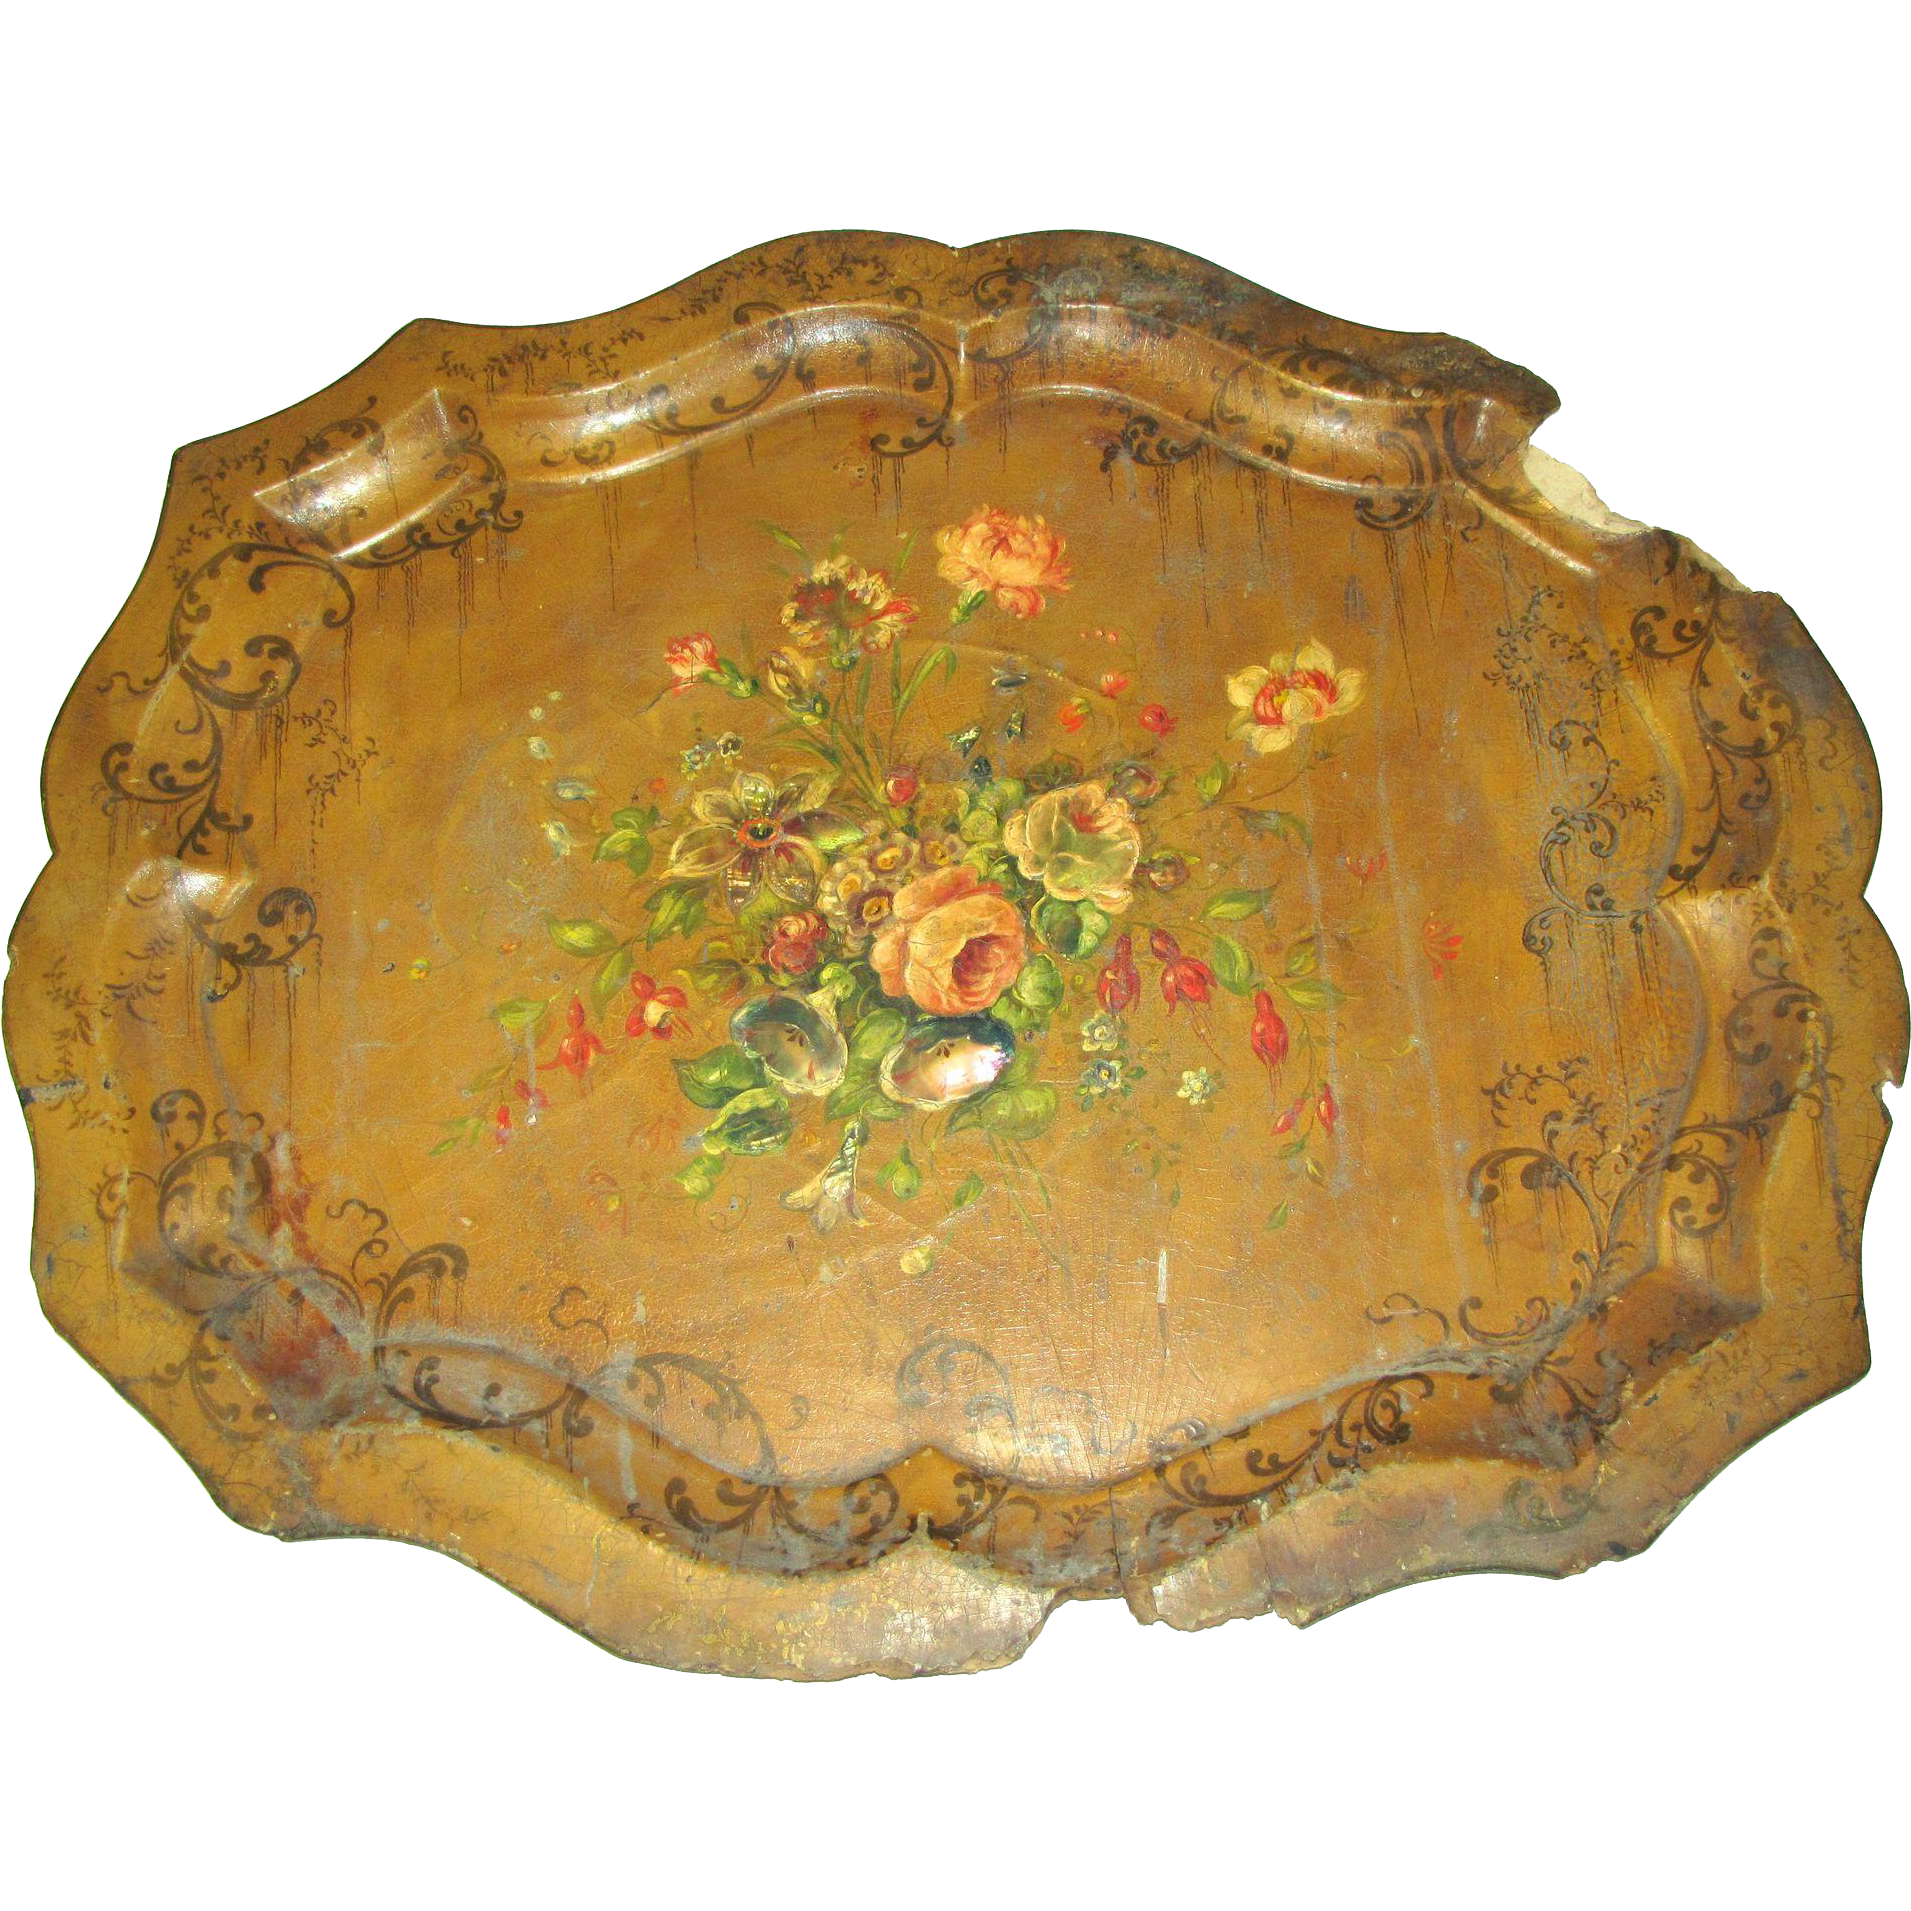 antique english papier mache tole tray mop huge from tomjudy on ruby lane. Black Bedroom Furniture Sets. Home Design Ideas